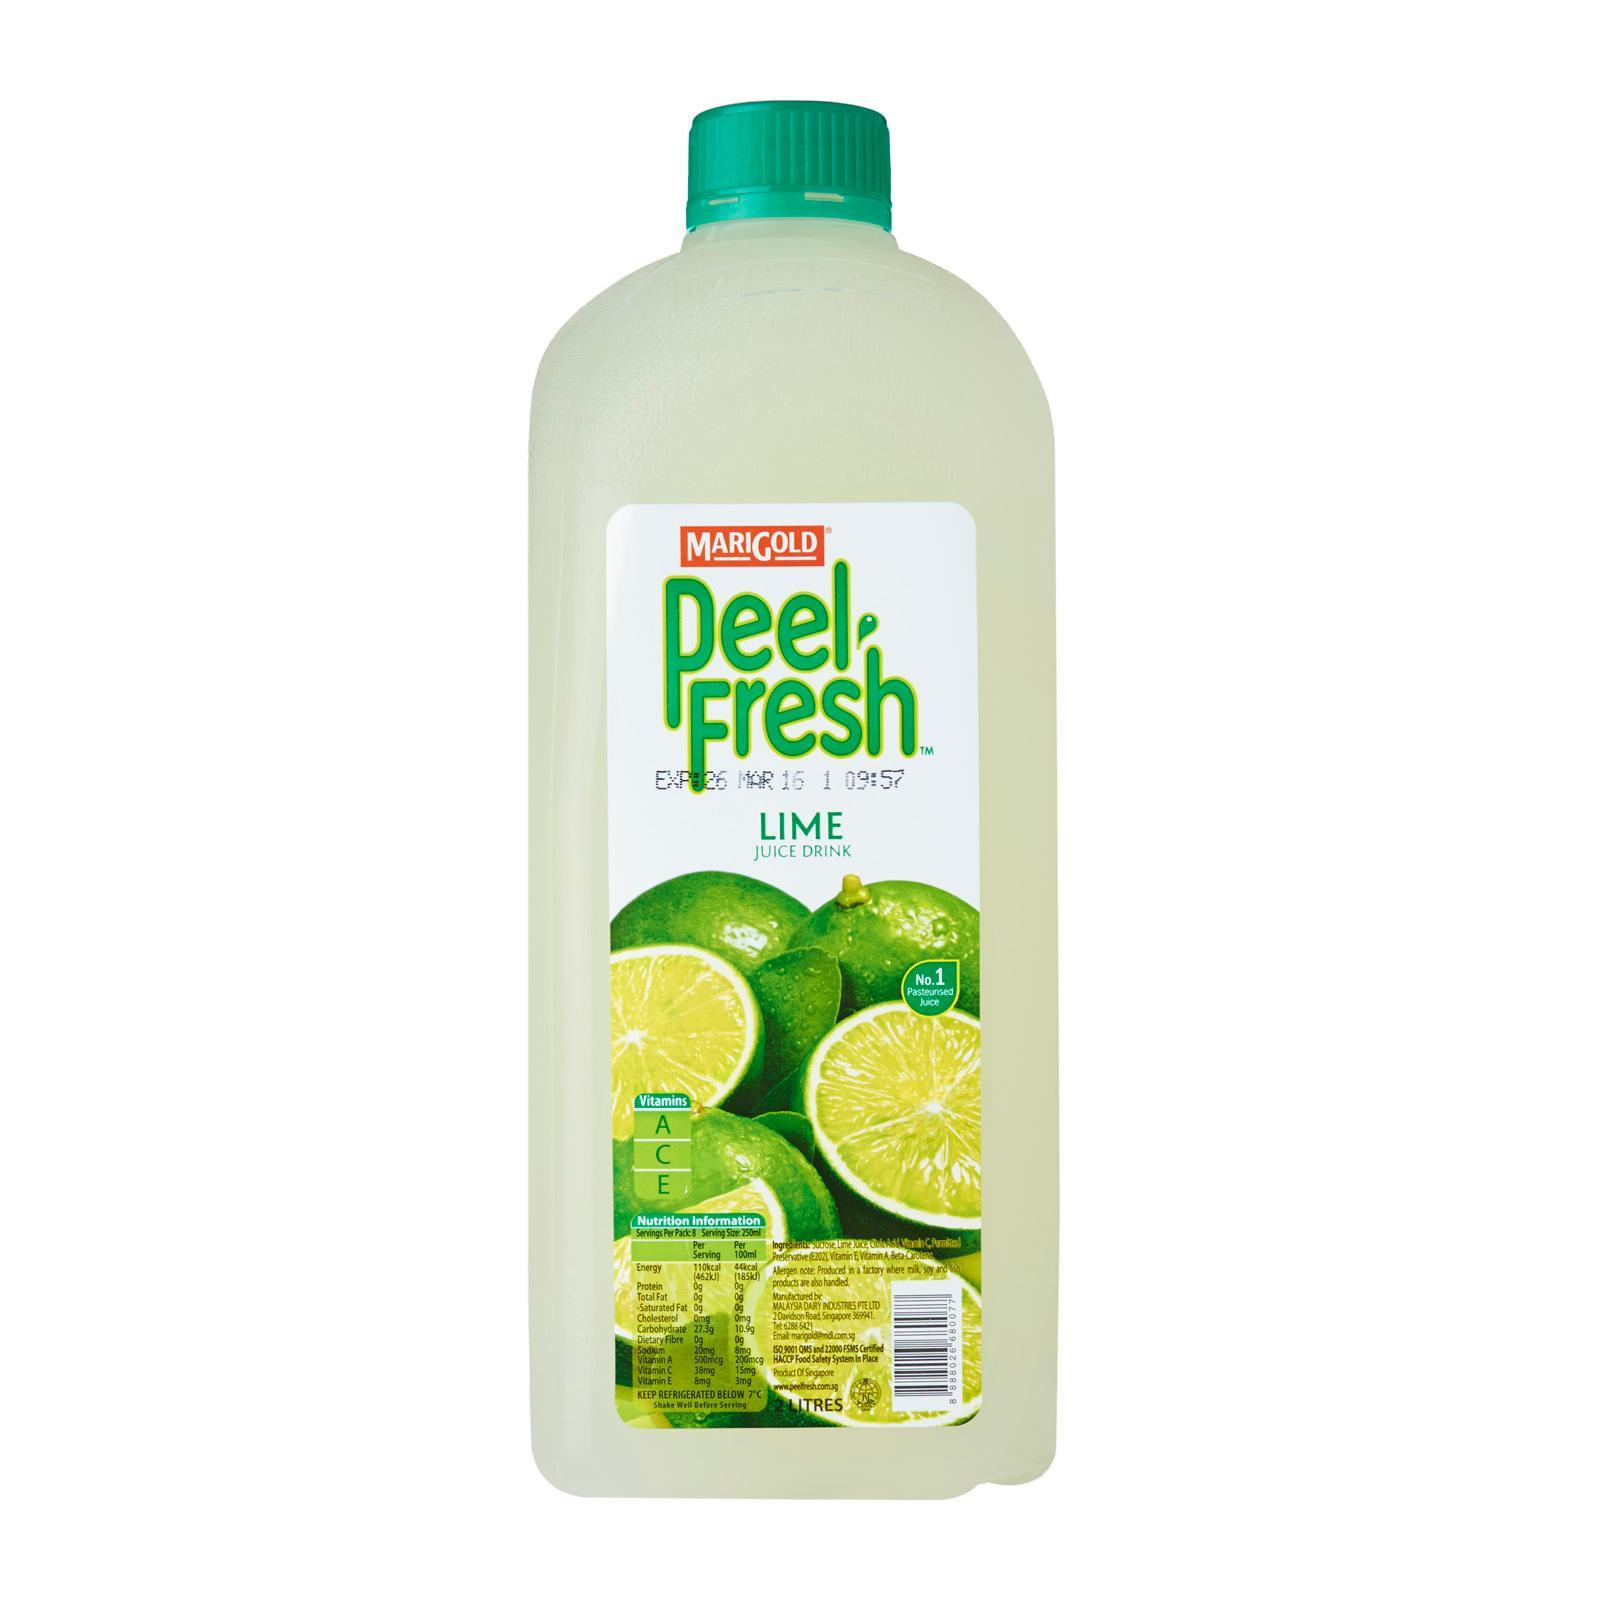 MARIGOLD Peel Fresh Juice Drink - Lime